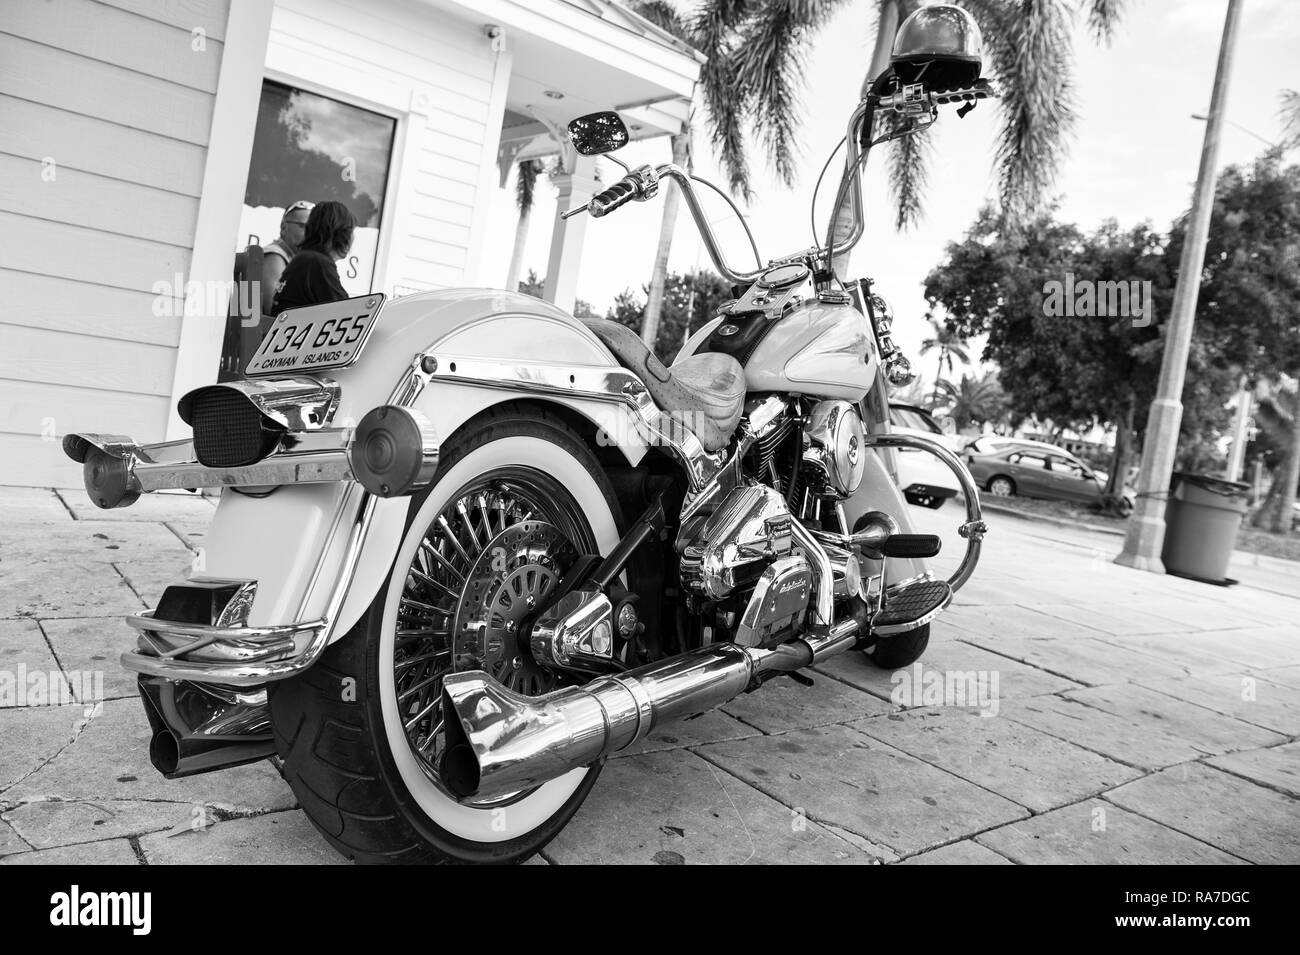 George Town, Cayman Islands - February 06, 2016: harley davidson motorcycle parked at house. motorcycle. travelling on cool motorcycle. Motorcycle club. Wanderlust - Stock Image